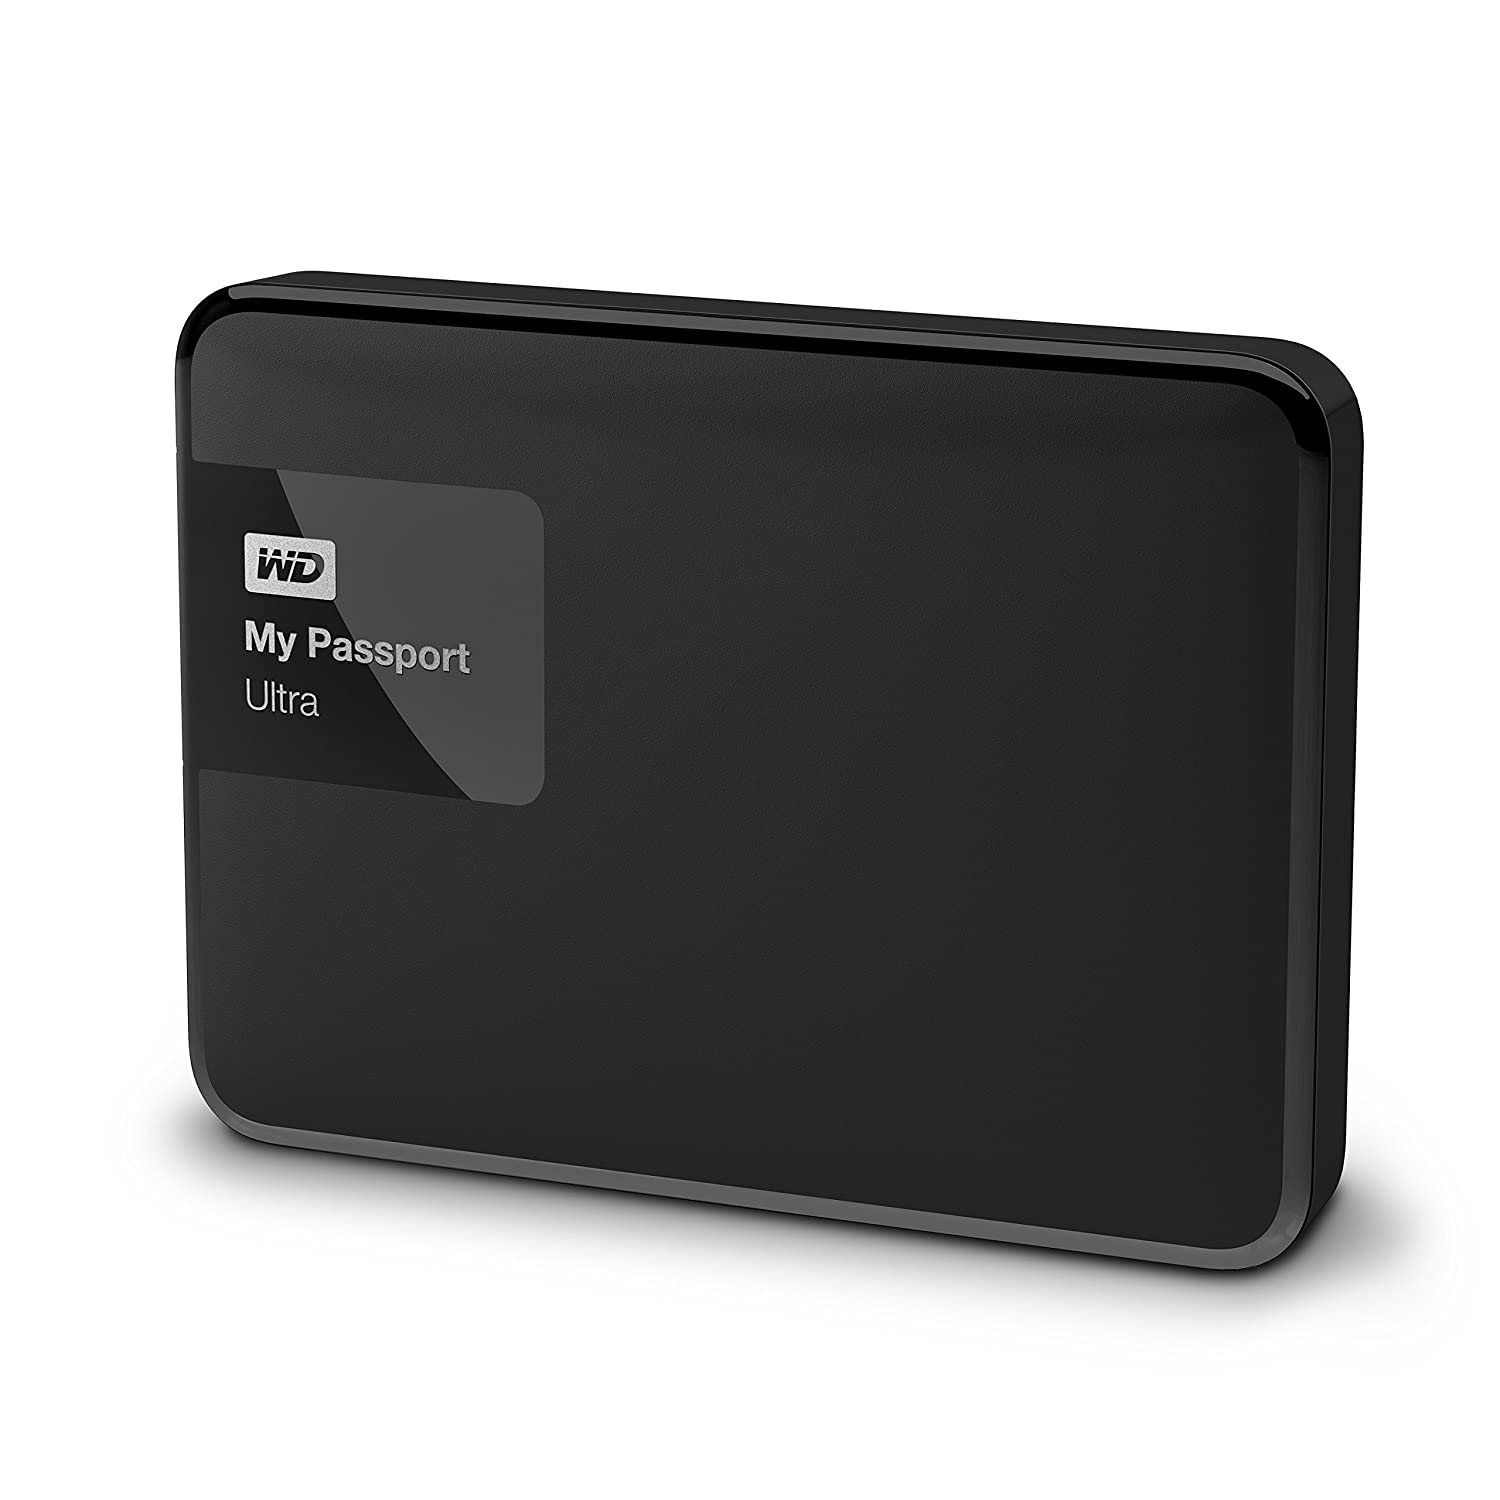 Top 10 Best Wireless Portable 2TB External Hard Drives For Media Streaming 2016-2017 - cover